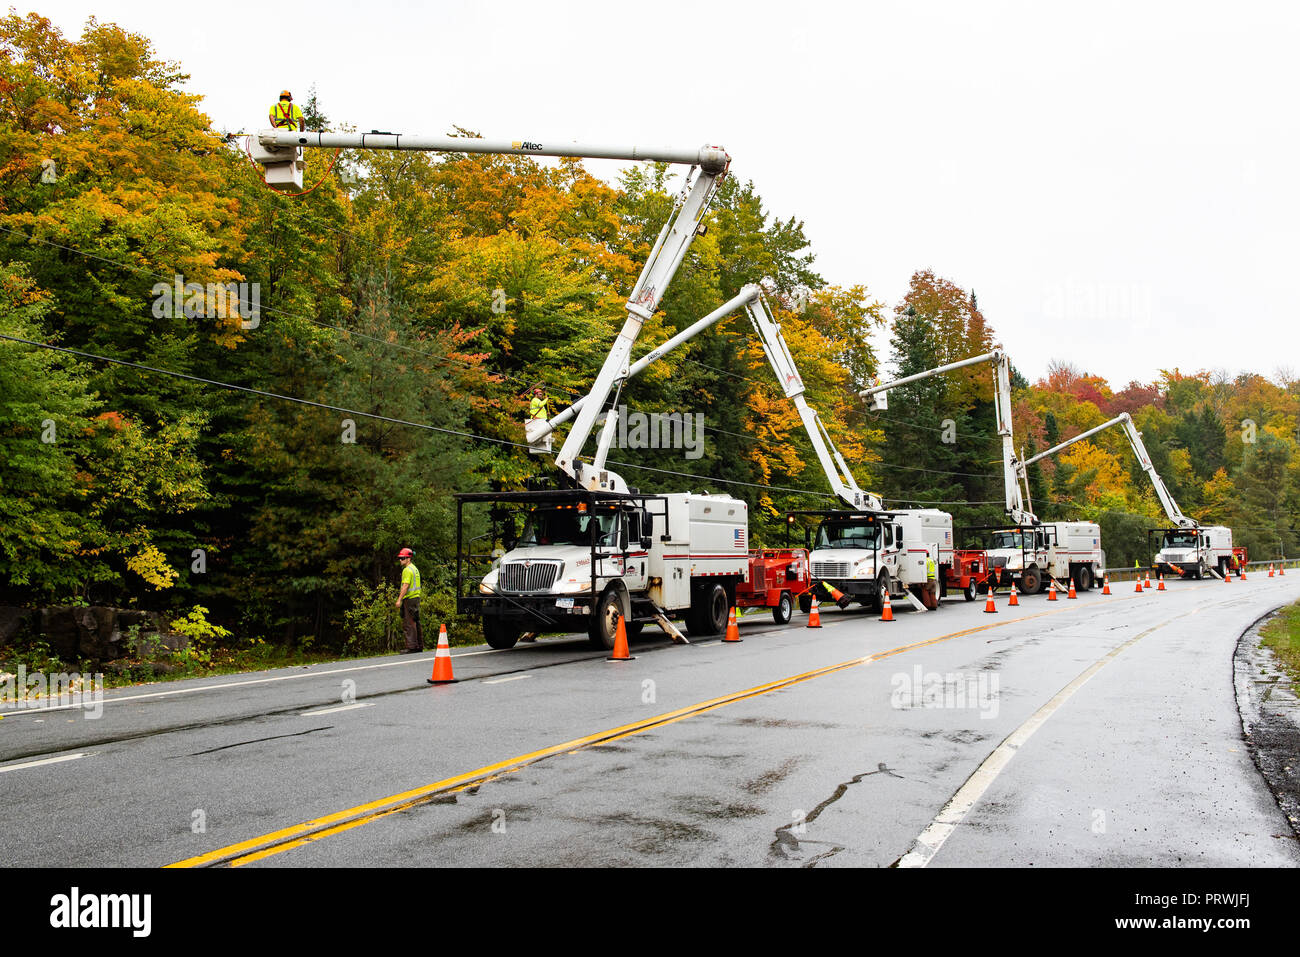 a-fleet-of-service-vehicles-gathered-in-the-adirondacks-mountains-ny-usa-trimming-trees-and-branches-away-from-power-lines-PRWJFJ.jpg